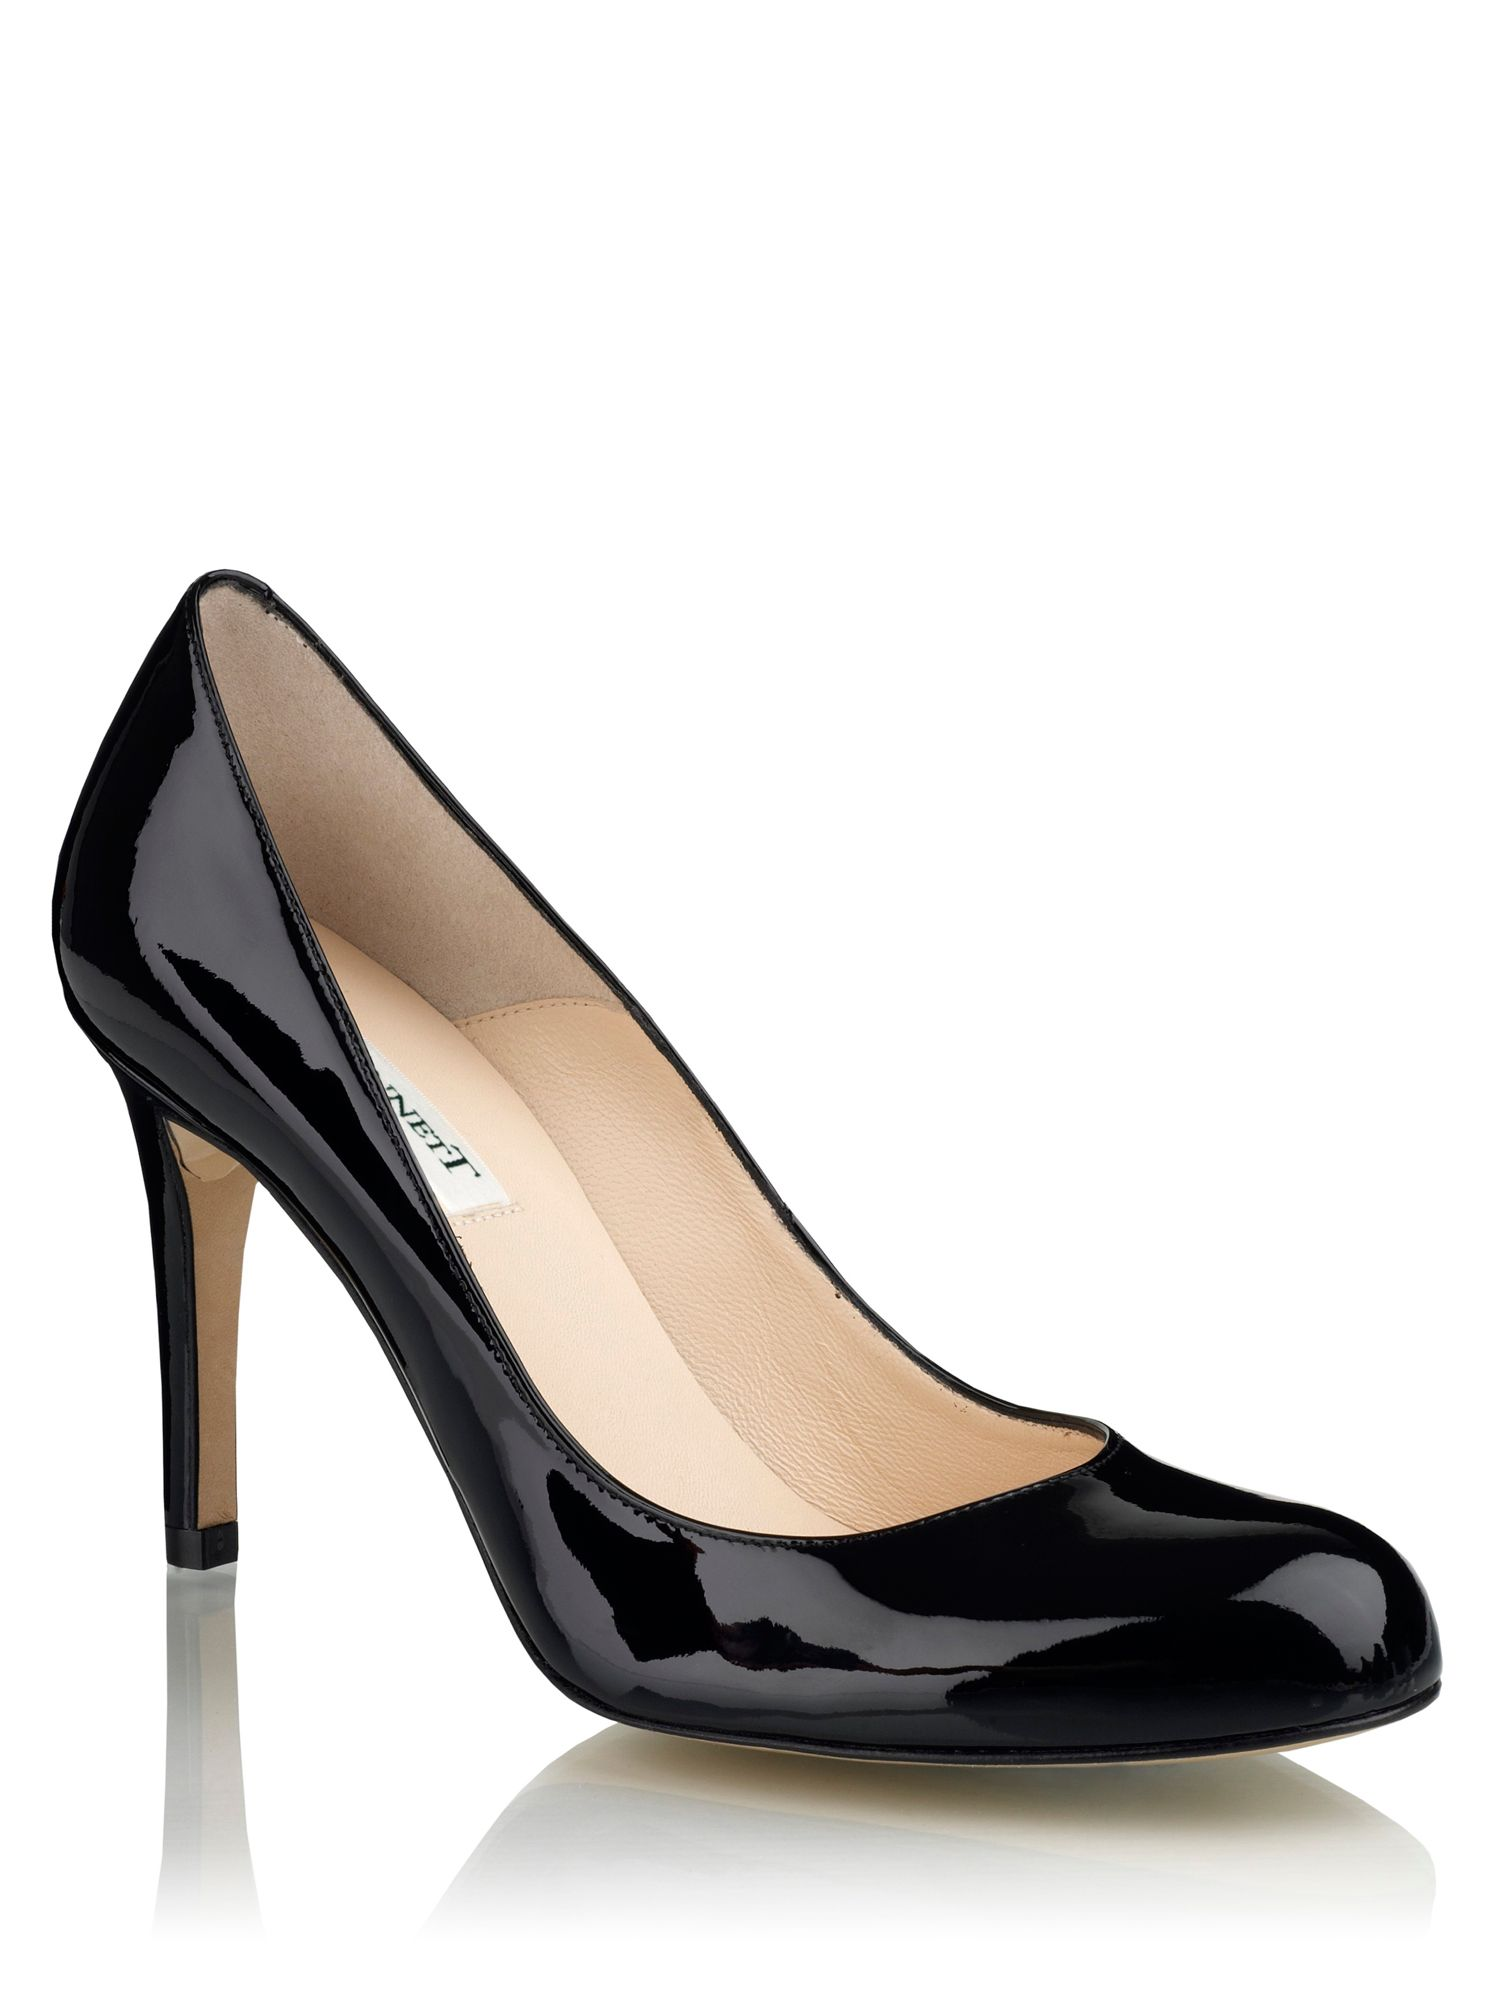 Shilo court shoe